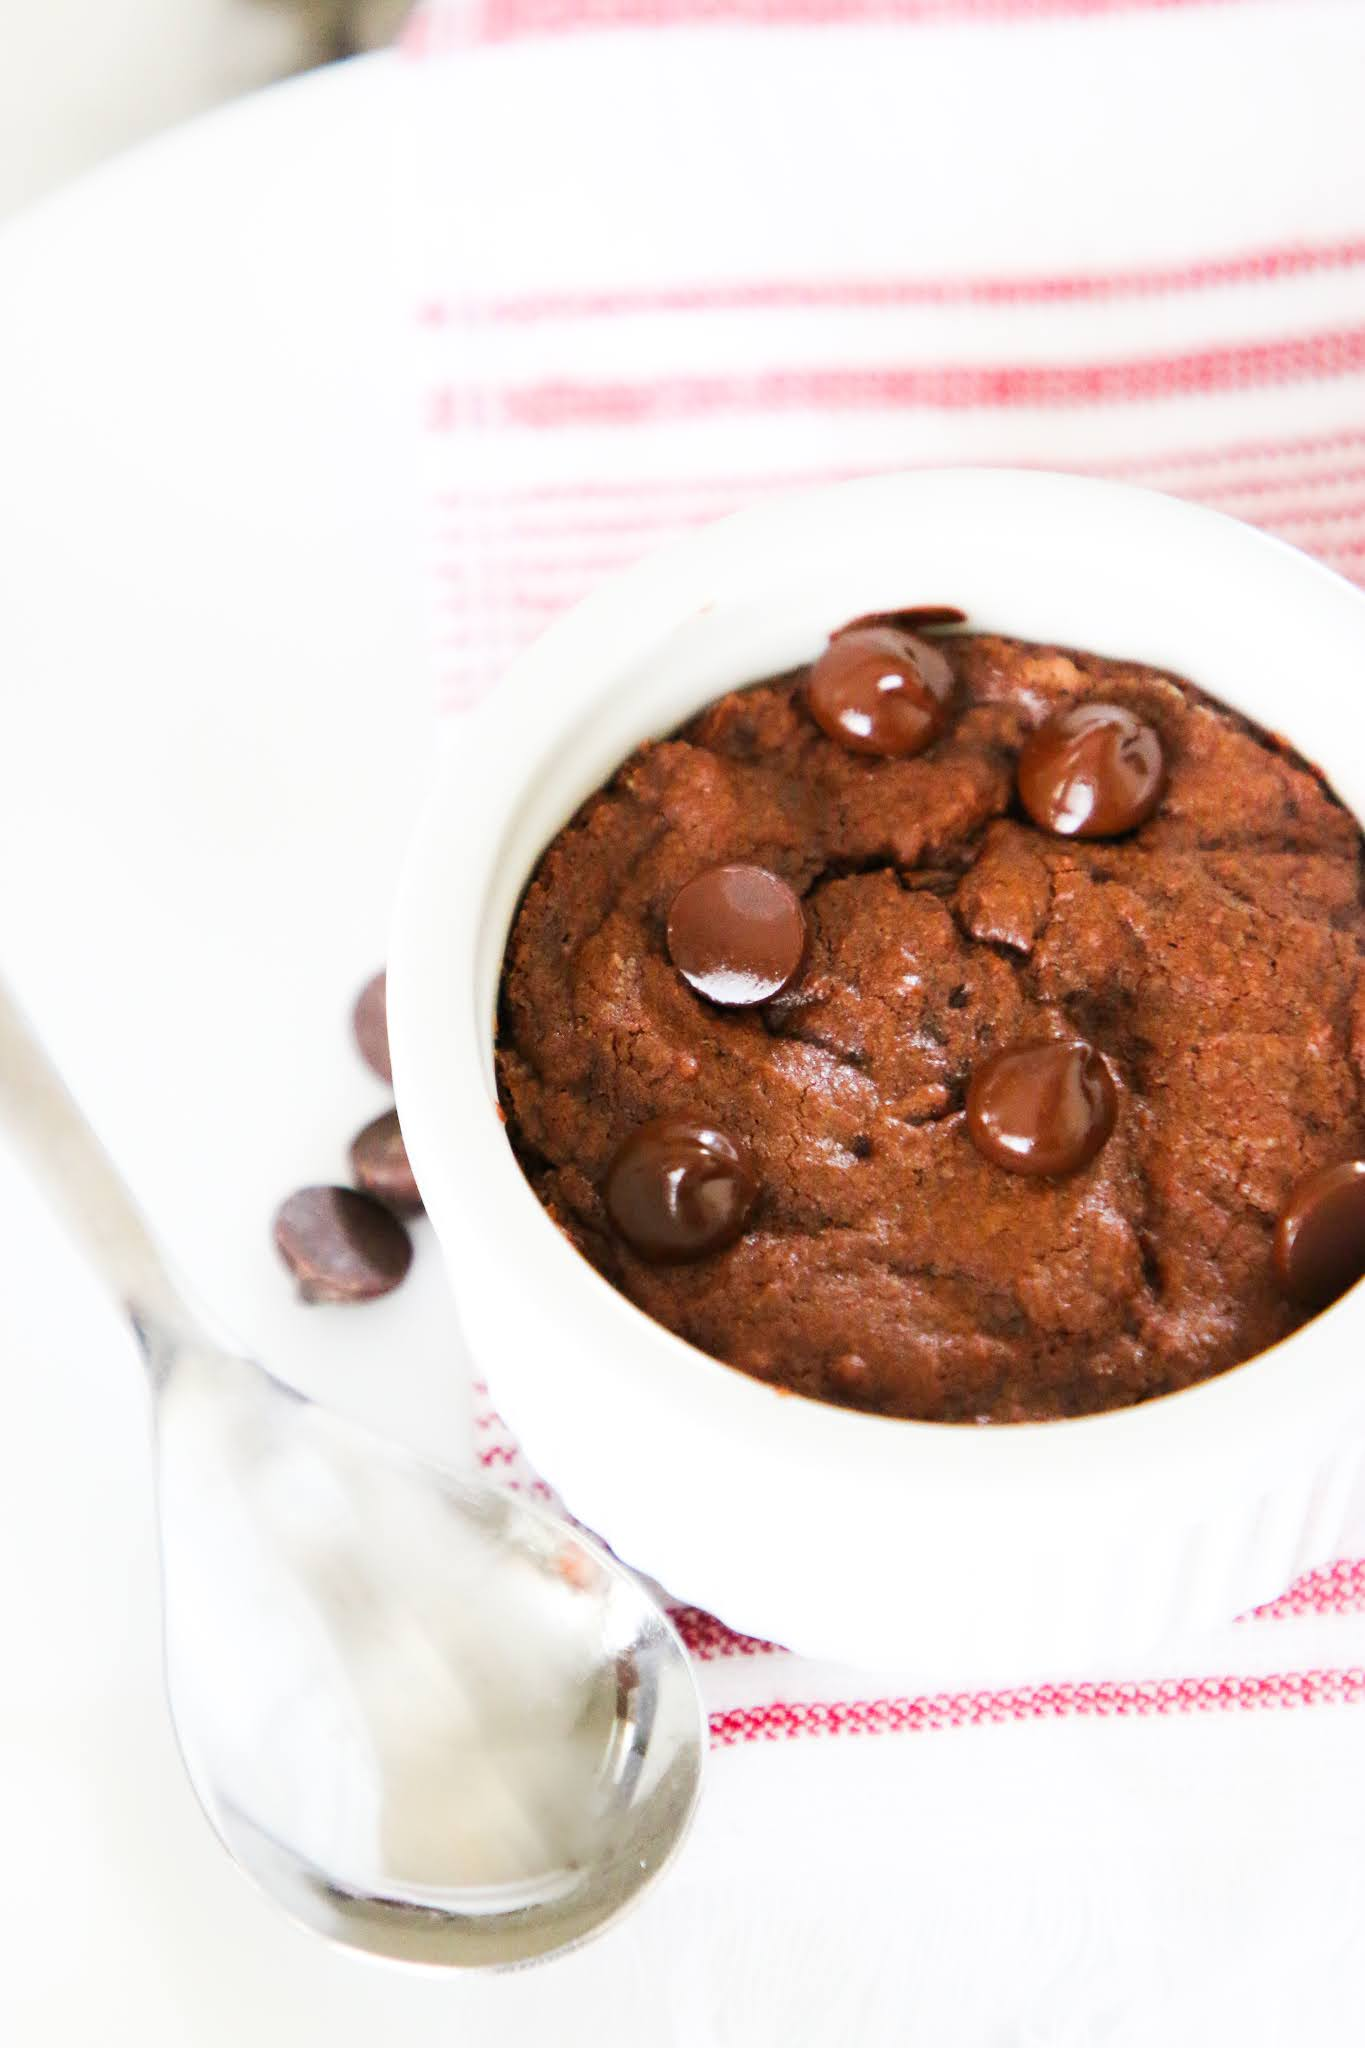 Brownie baked in a small white ramekin on top of a red dish towel placed on a white plate with scattered chocolate chips on a white marble table.